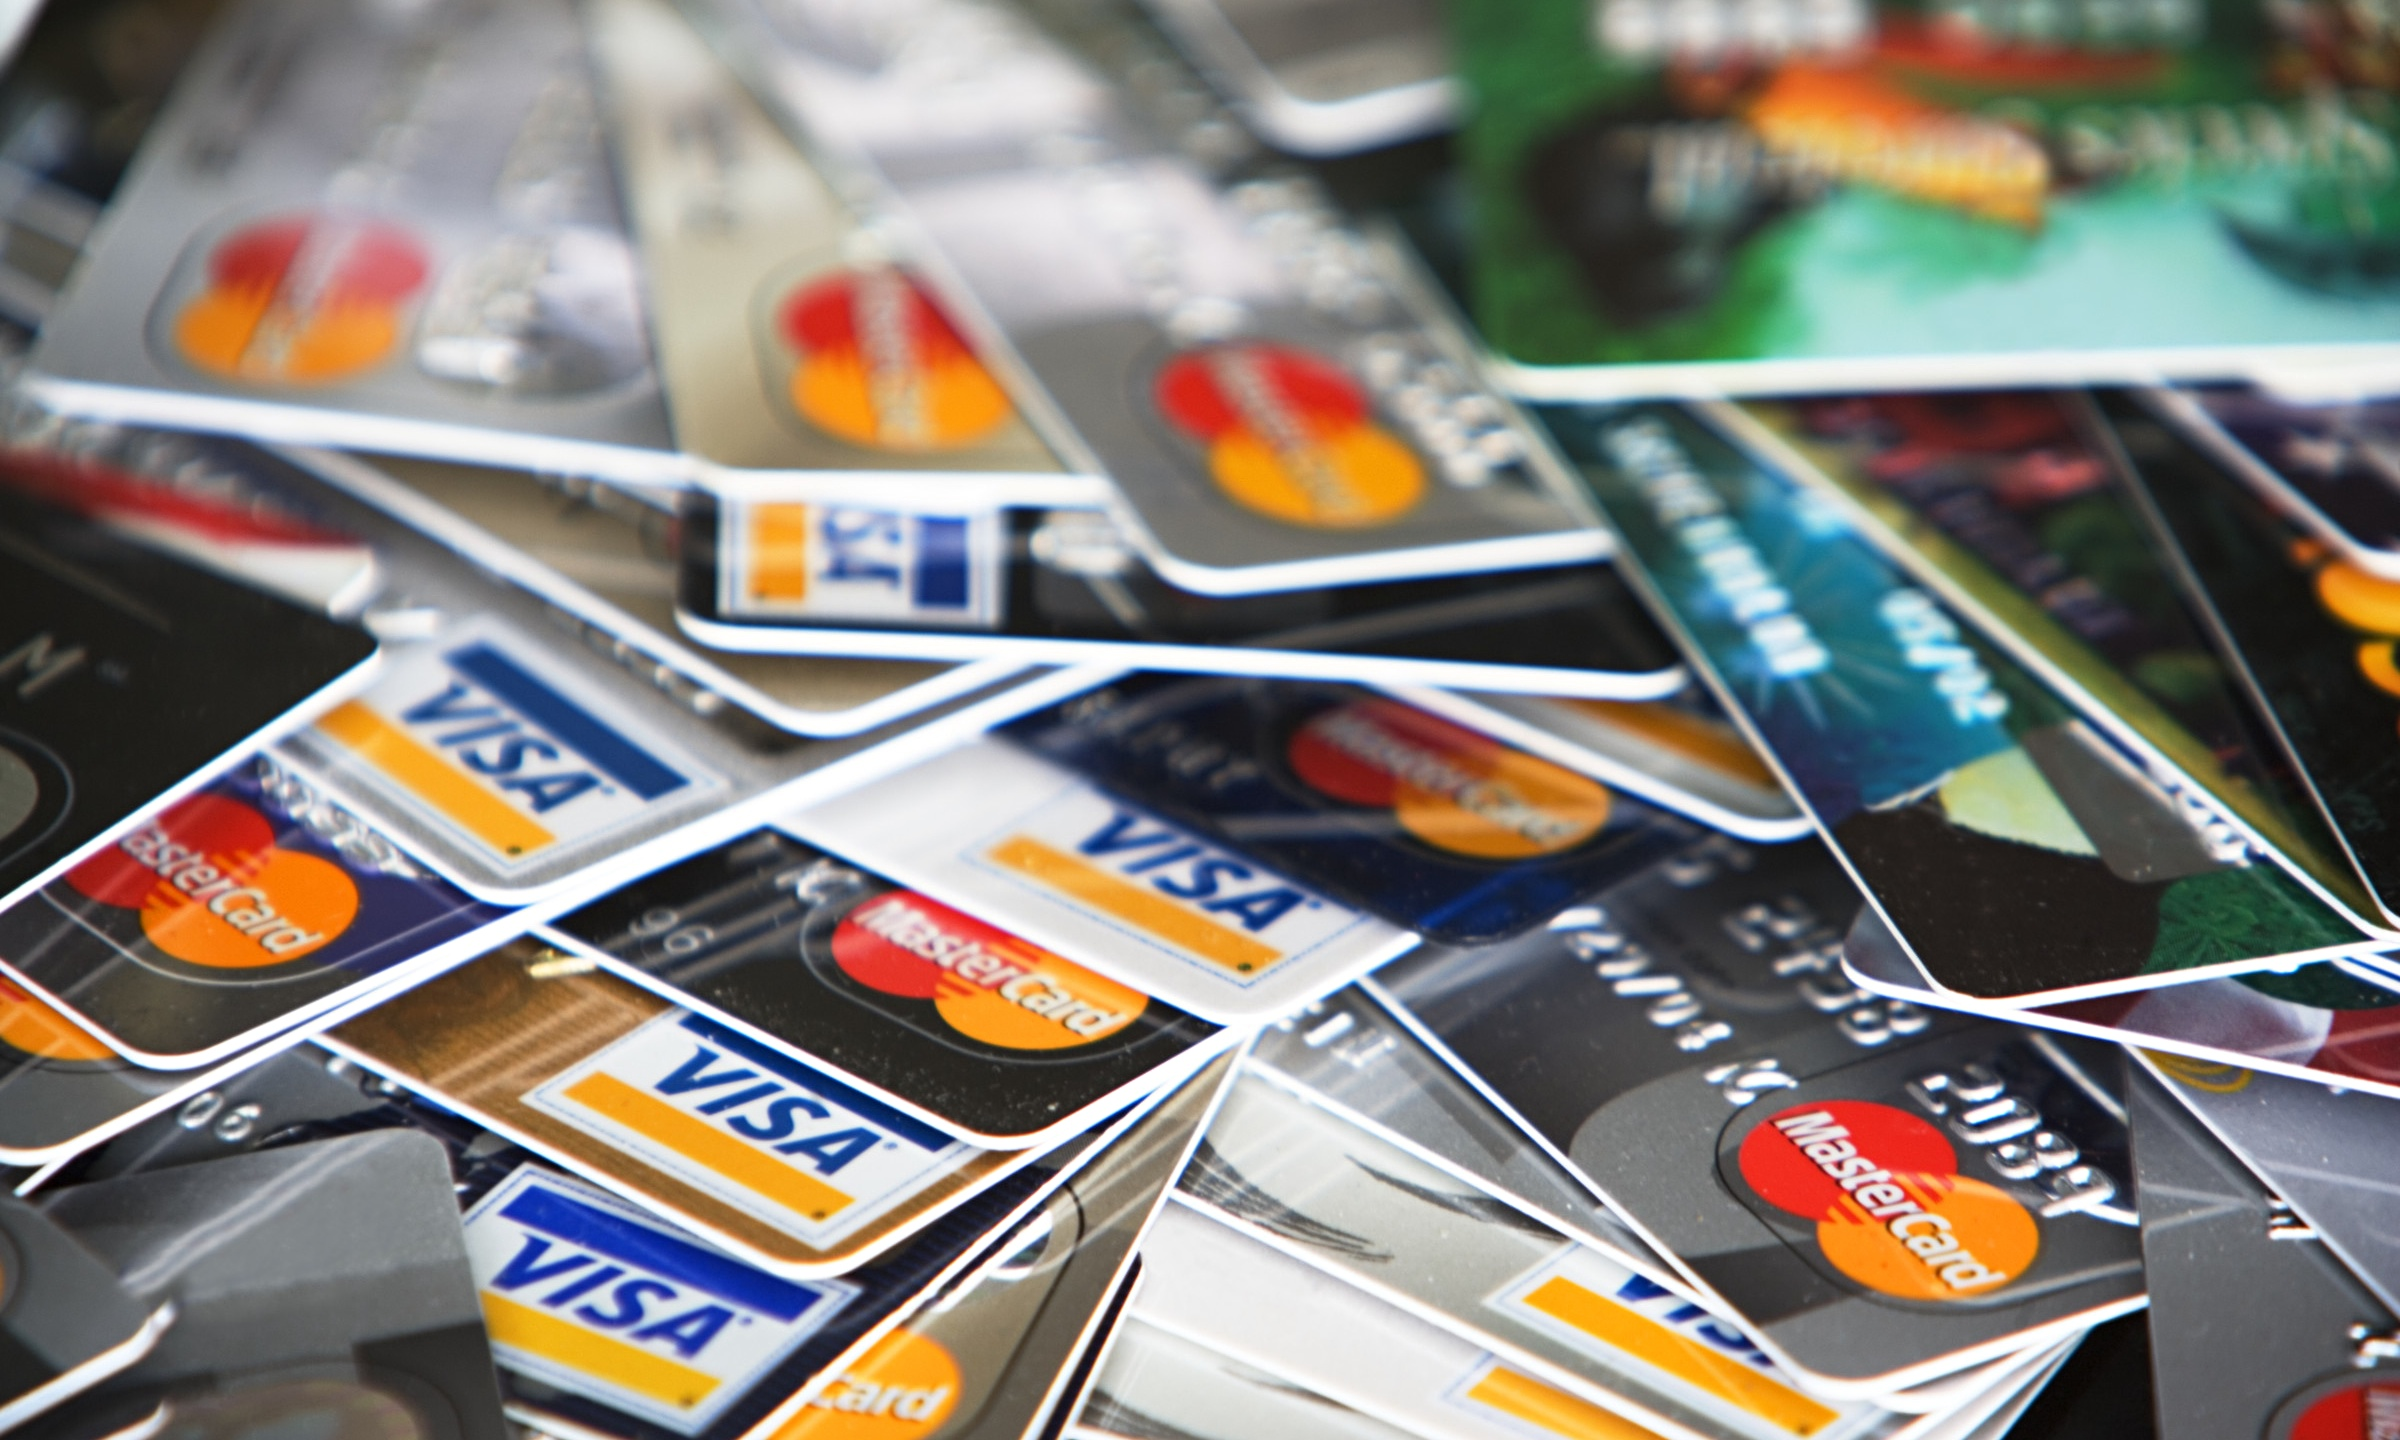 Credit Card Fraud Detection | Kaggle